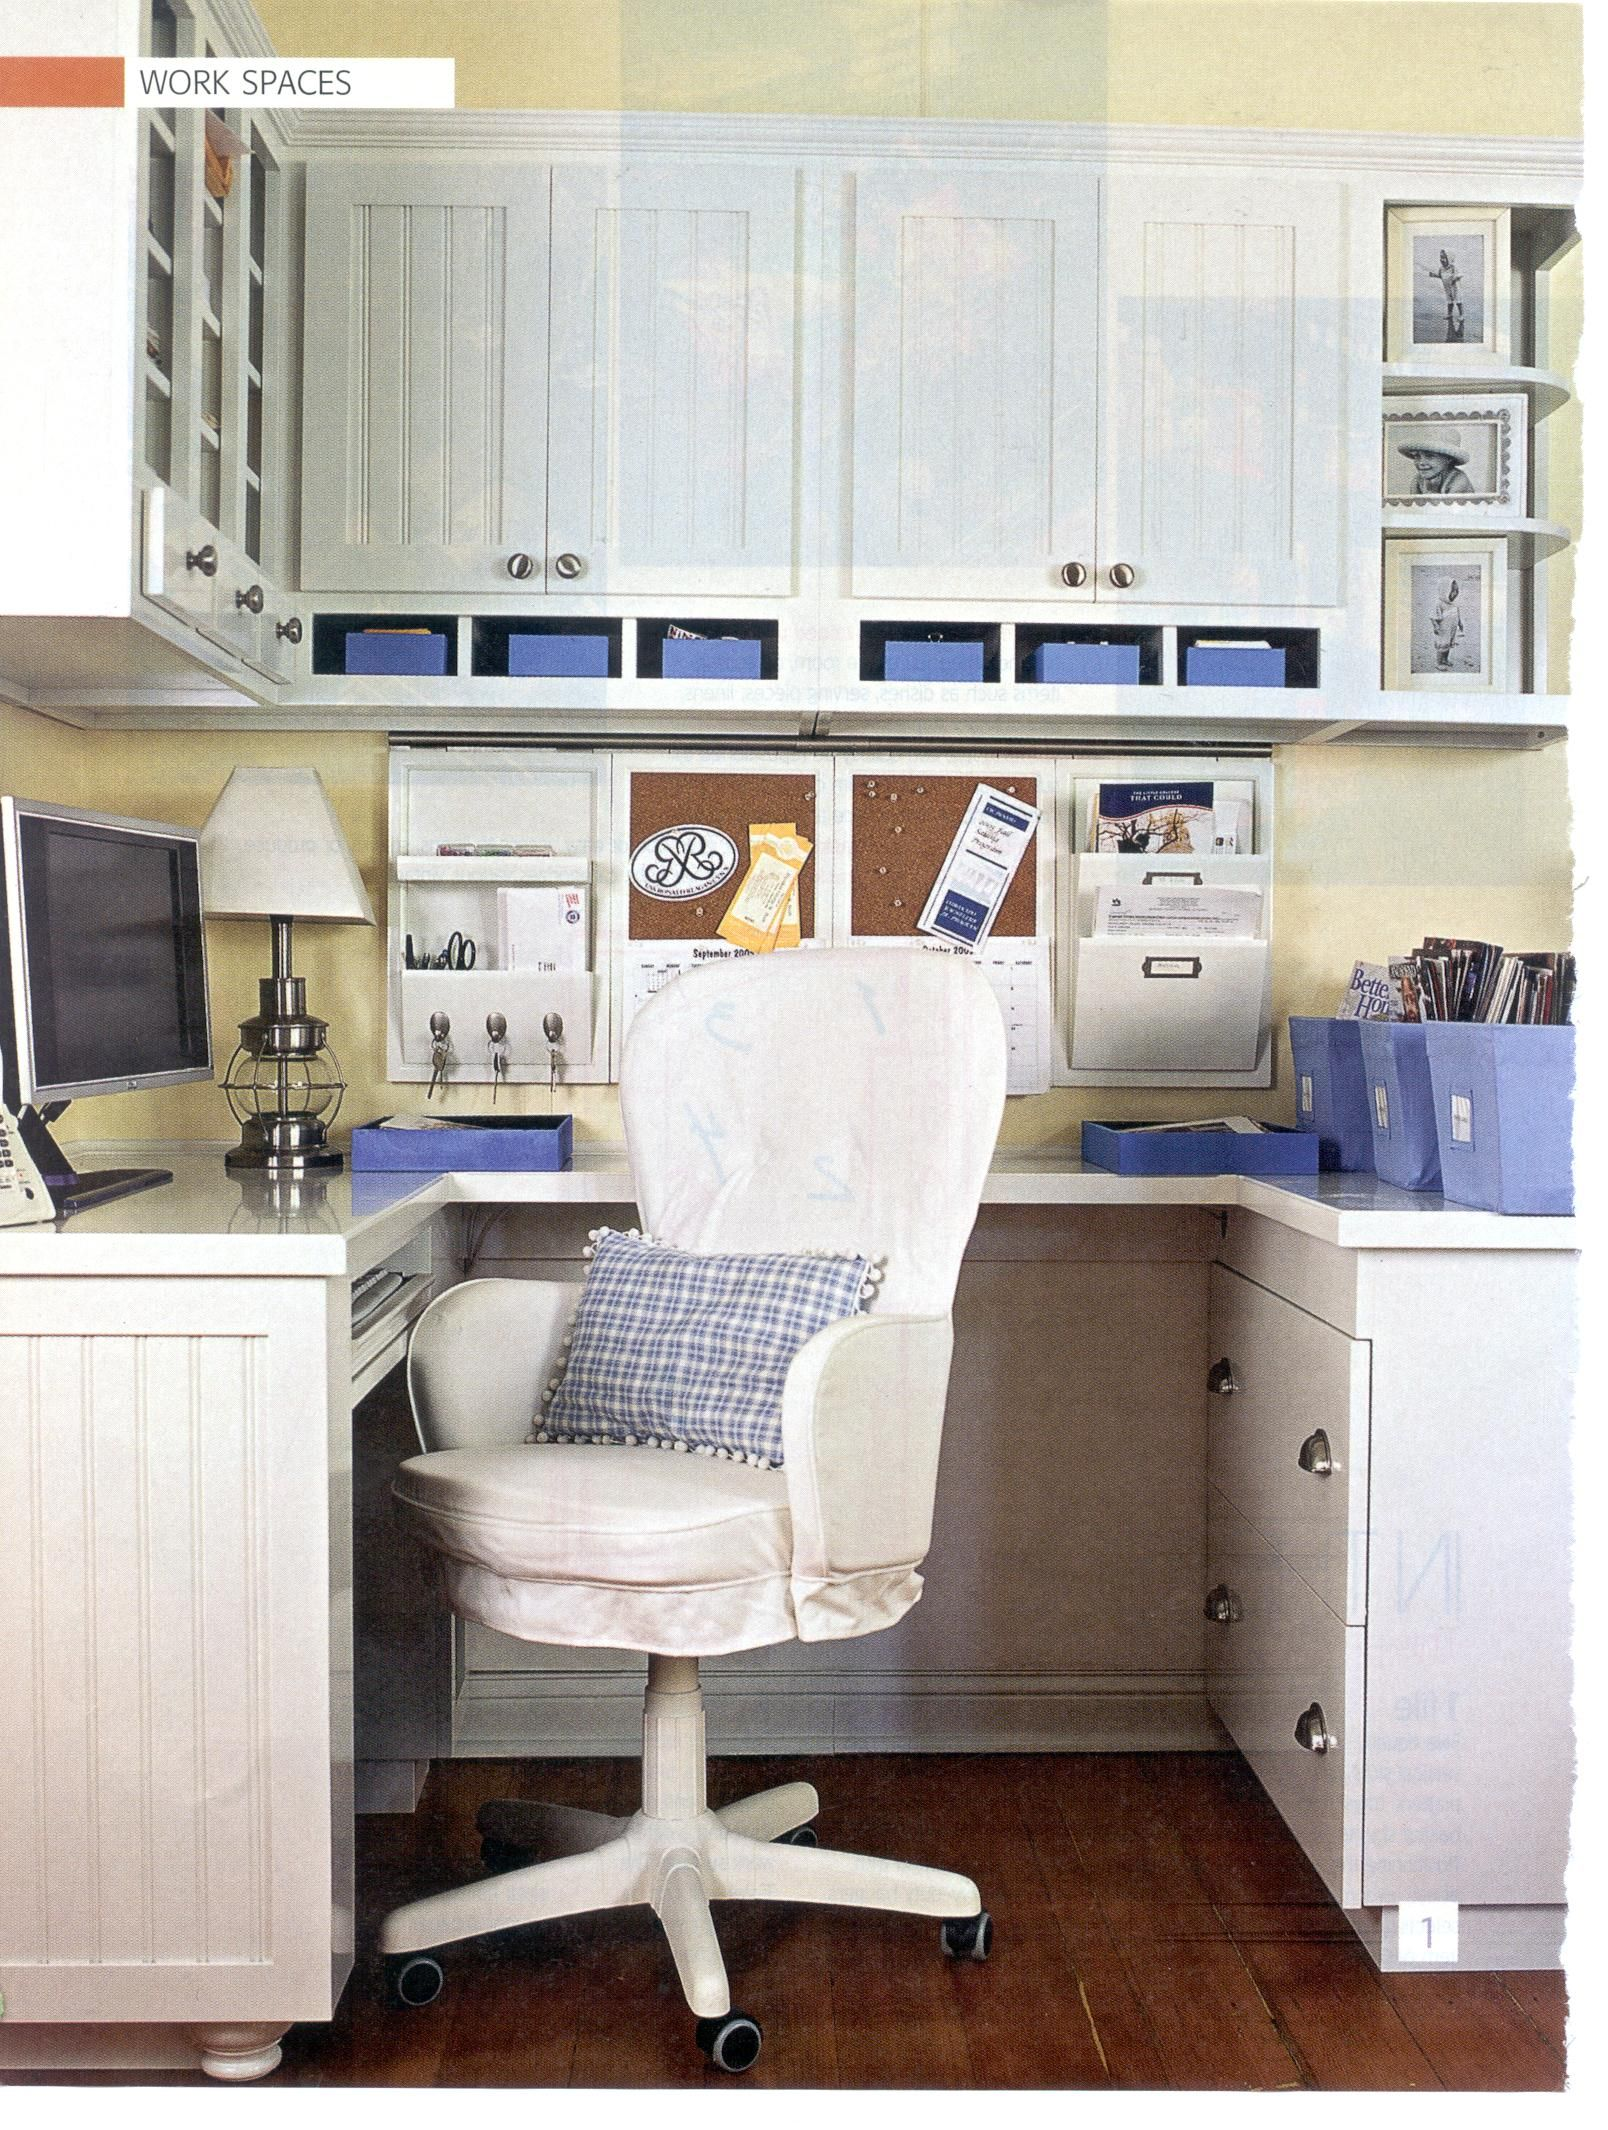 office storage ideas small spaces. Ideas For Strategic Organization \u0026 Storage Smart Work Space Layout Carve Out A Lot Of -- Even In Tight With U-shape Desk Setup Office Small Spaces